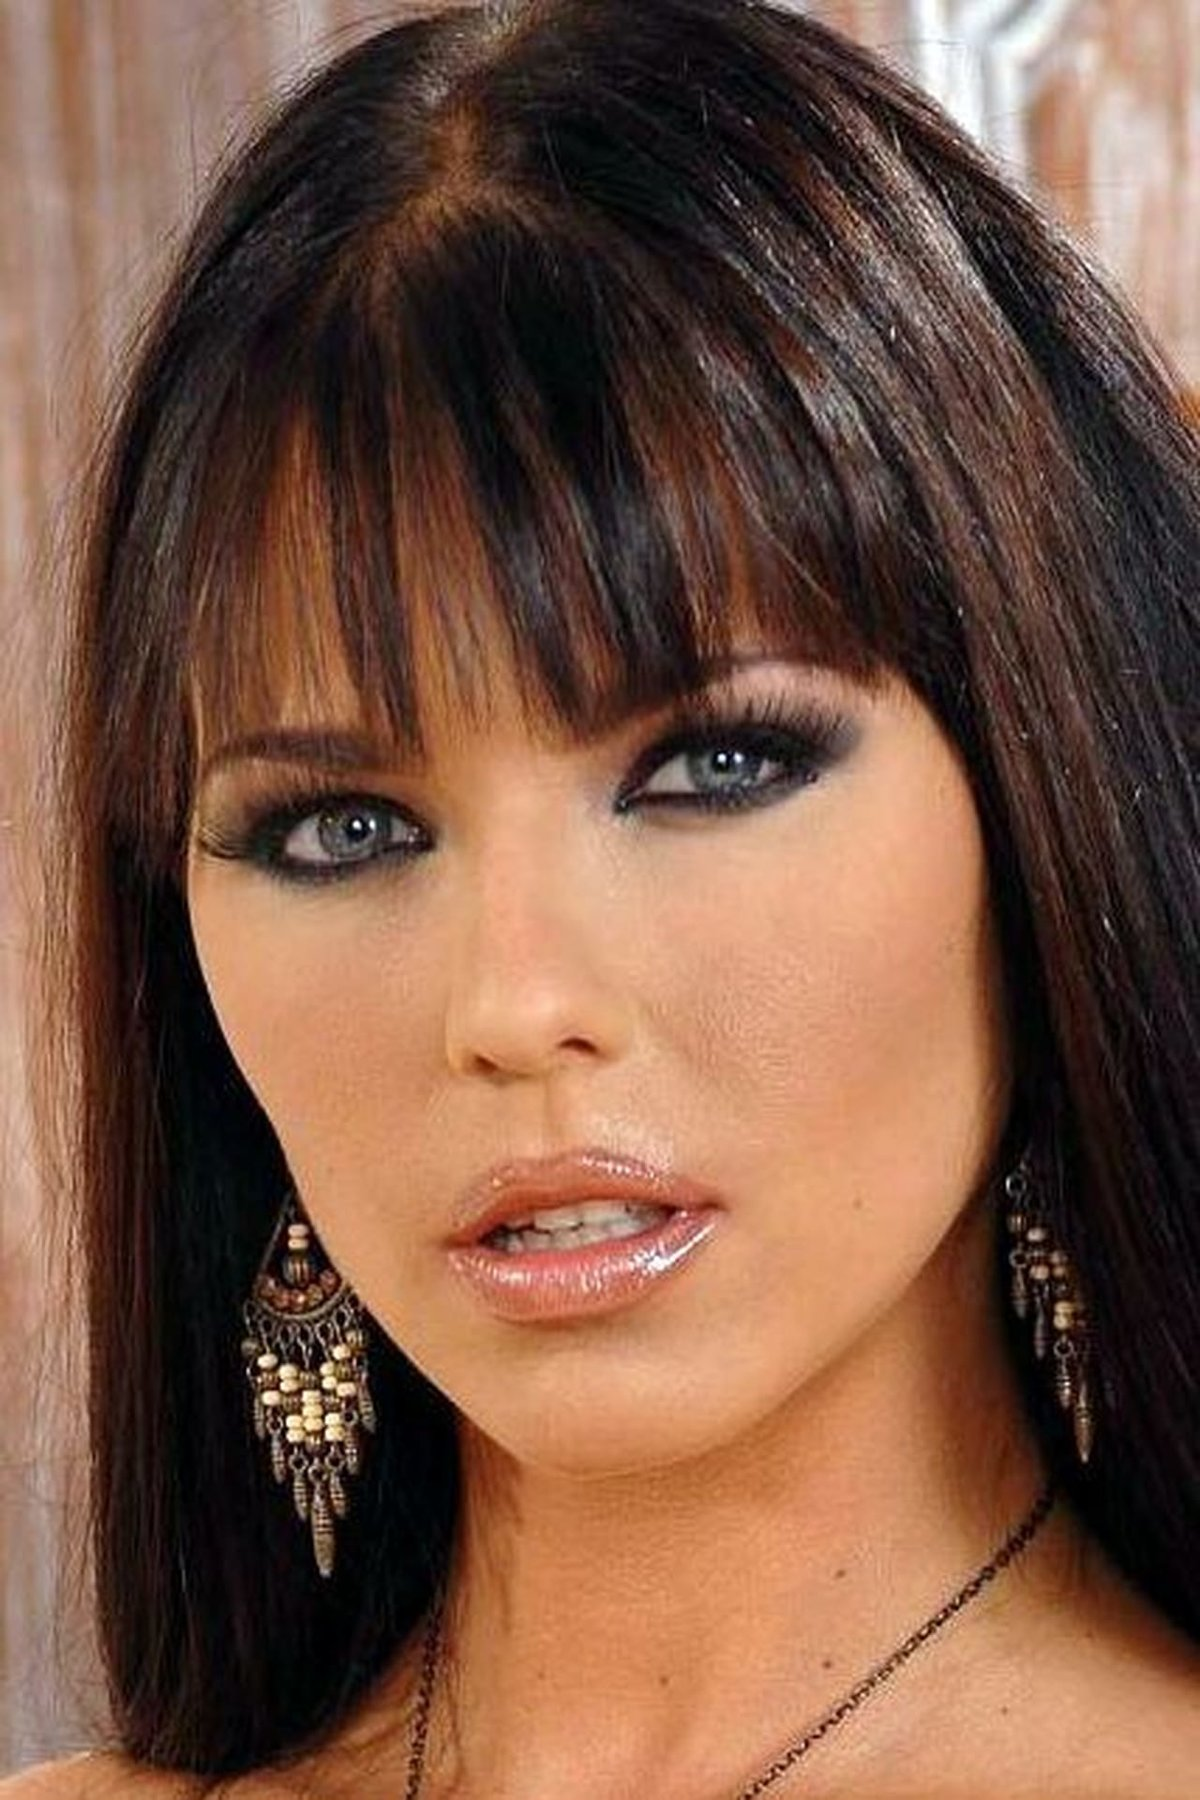 Simony Diamond Biography Mubimovies